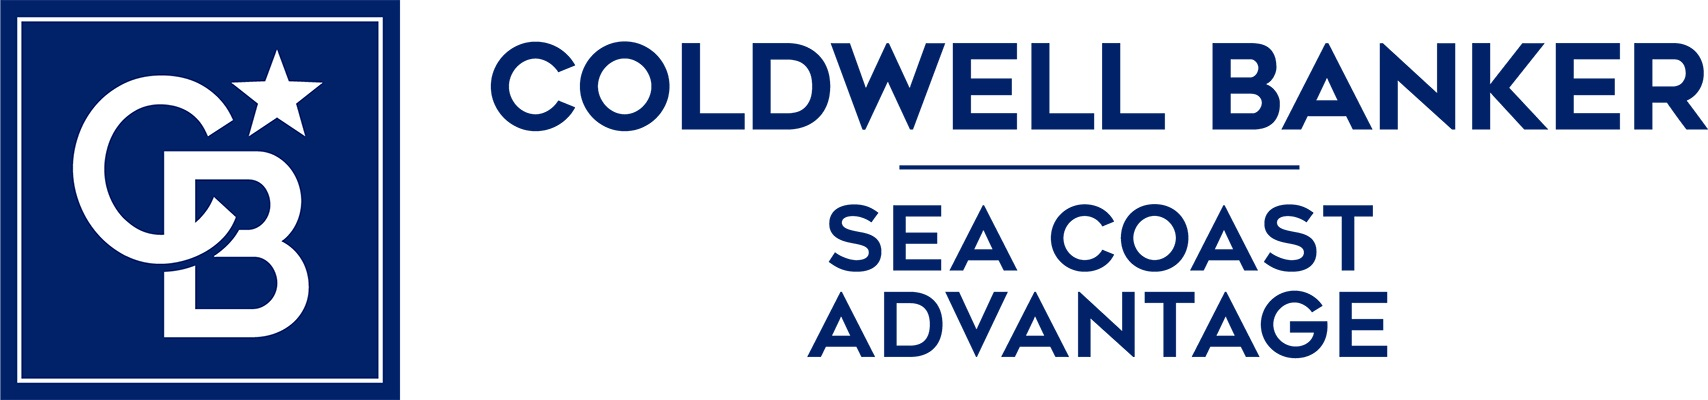 Kelli Salter - Coldwell Banker Sea Coast Advantage Realty